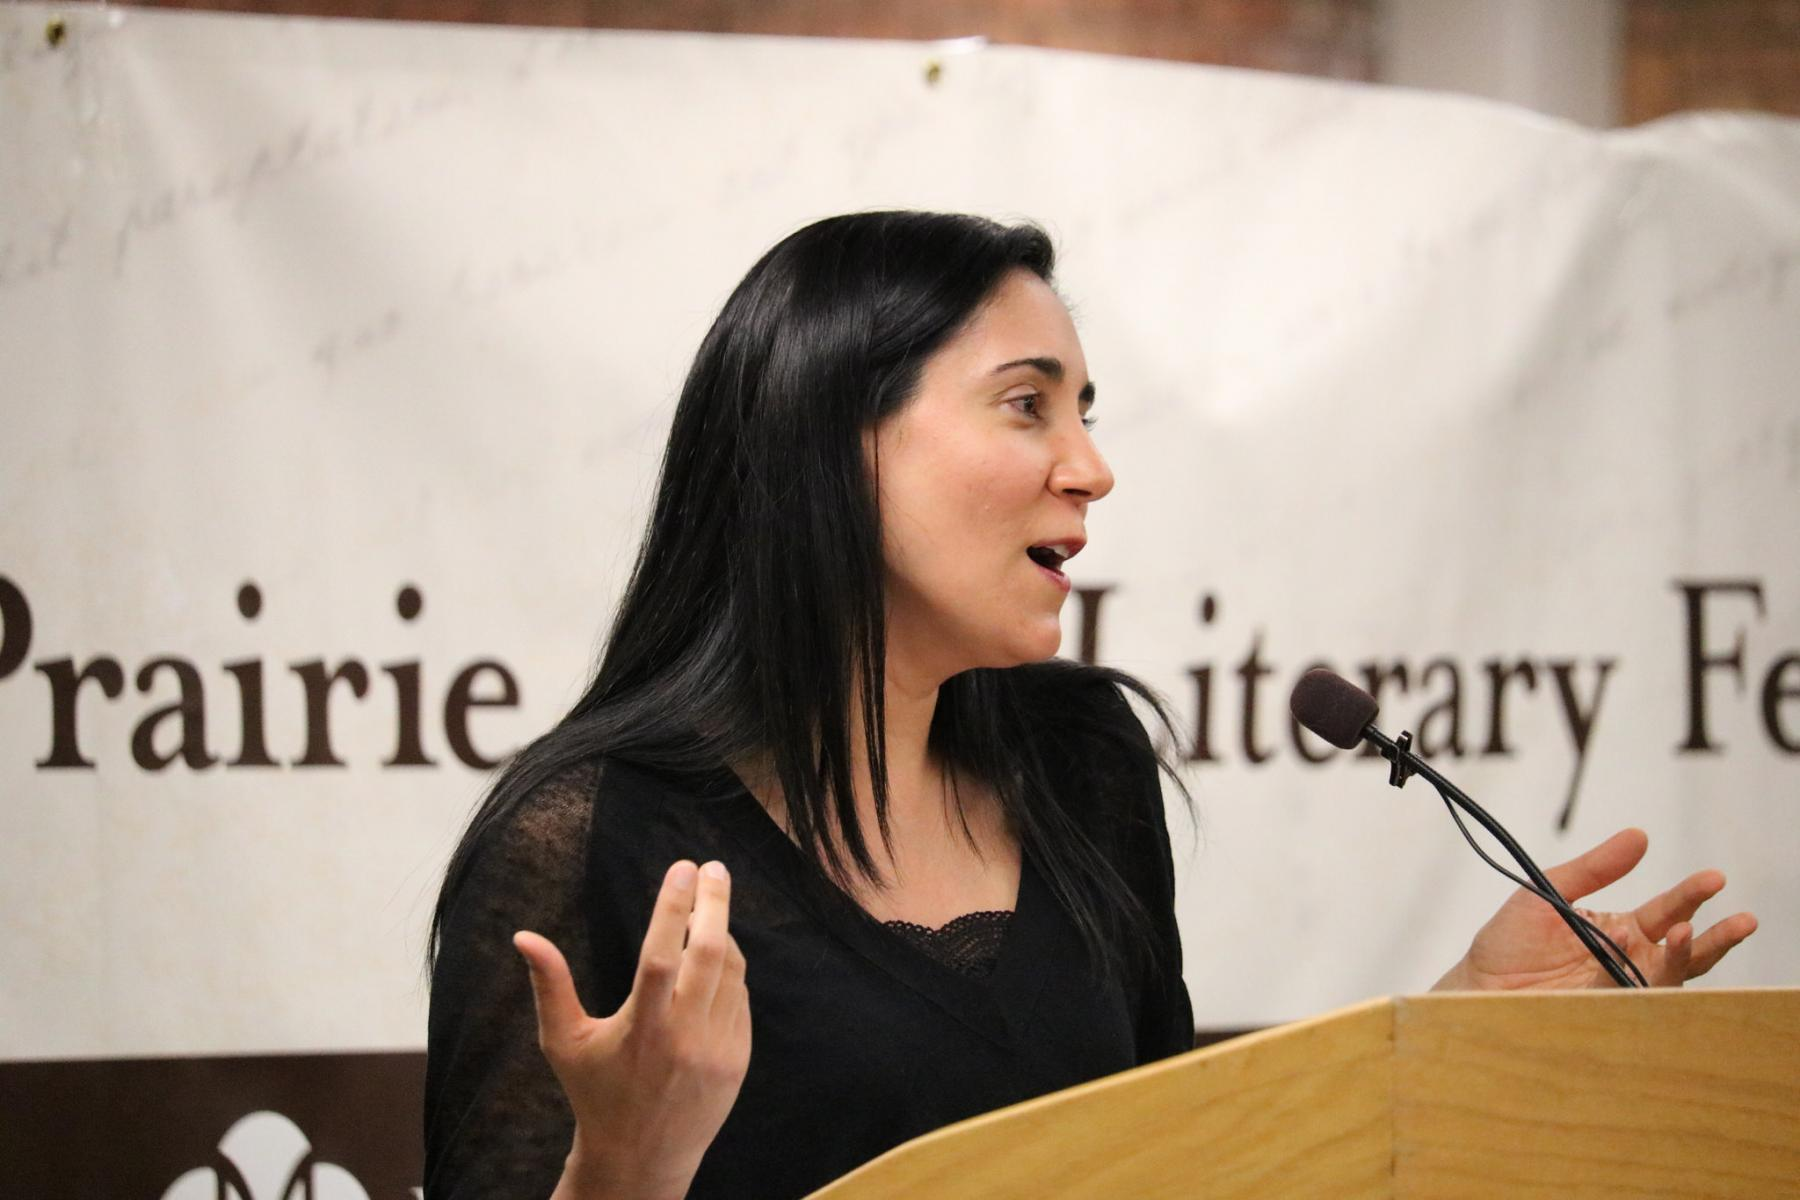 Author Vandana Khanna at the 2015 Prairie Gate Literary Festival